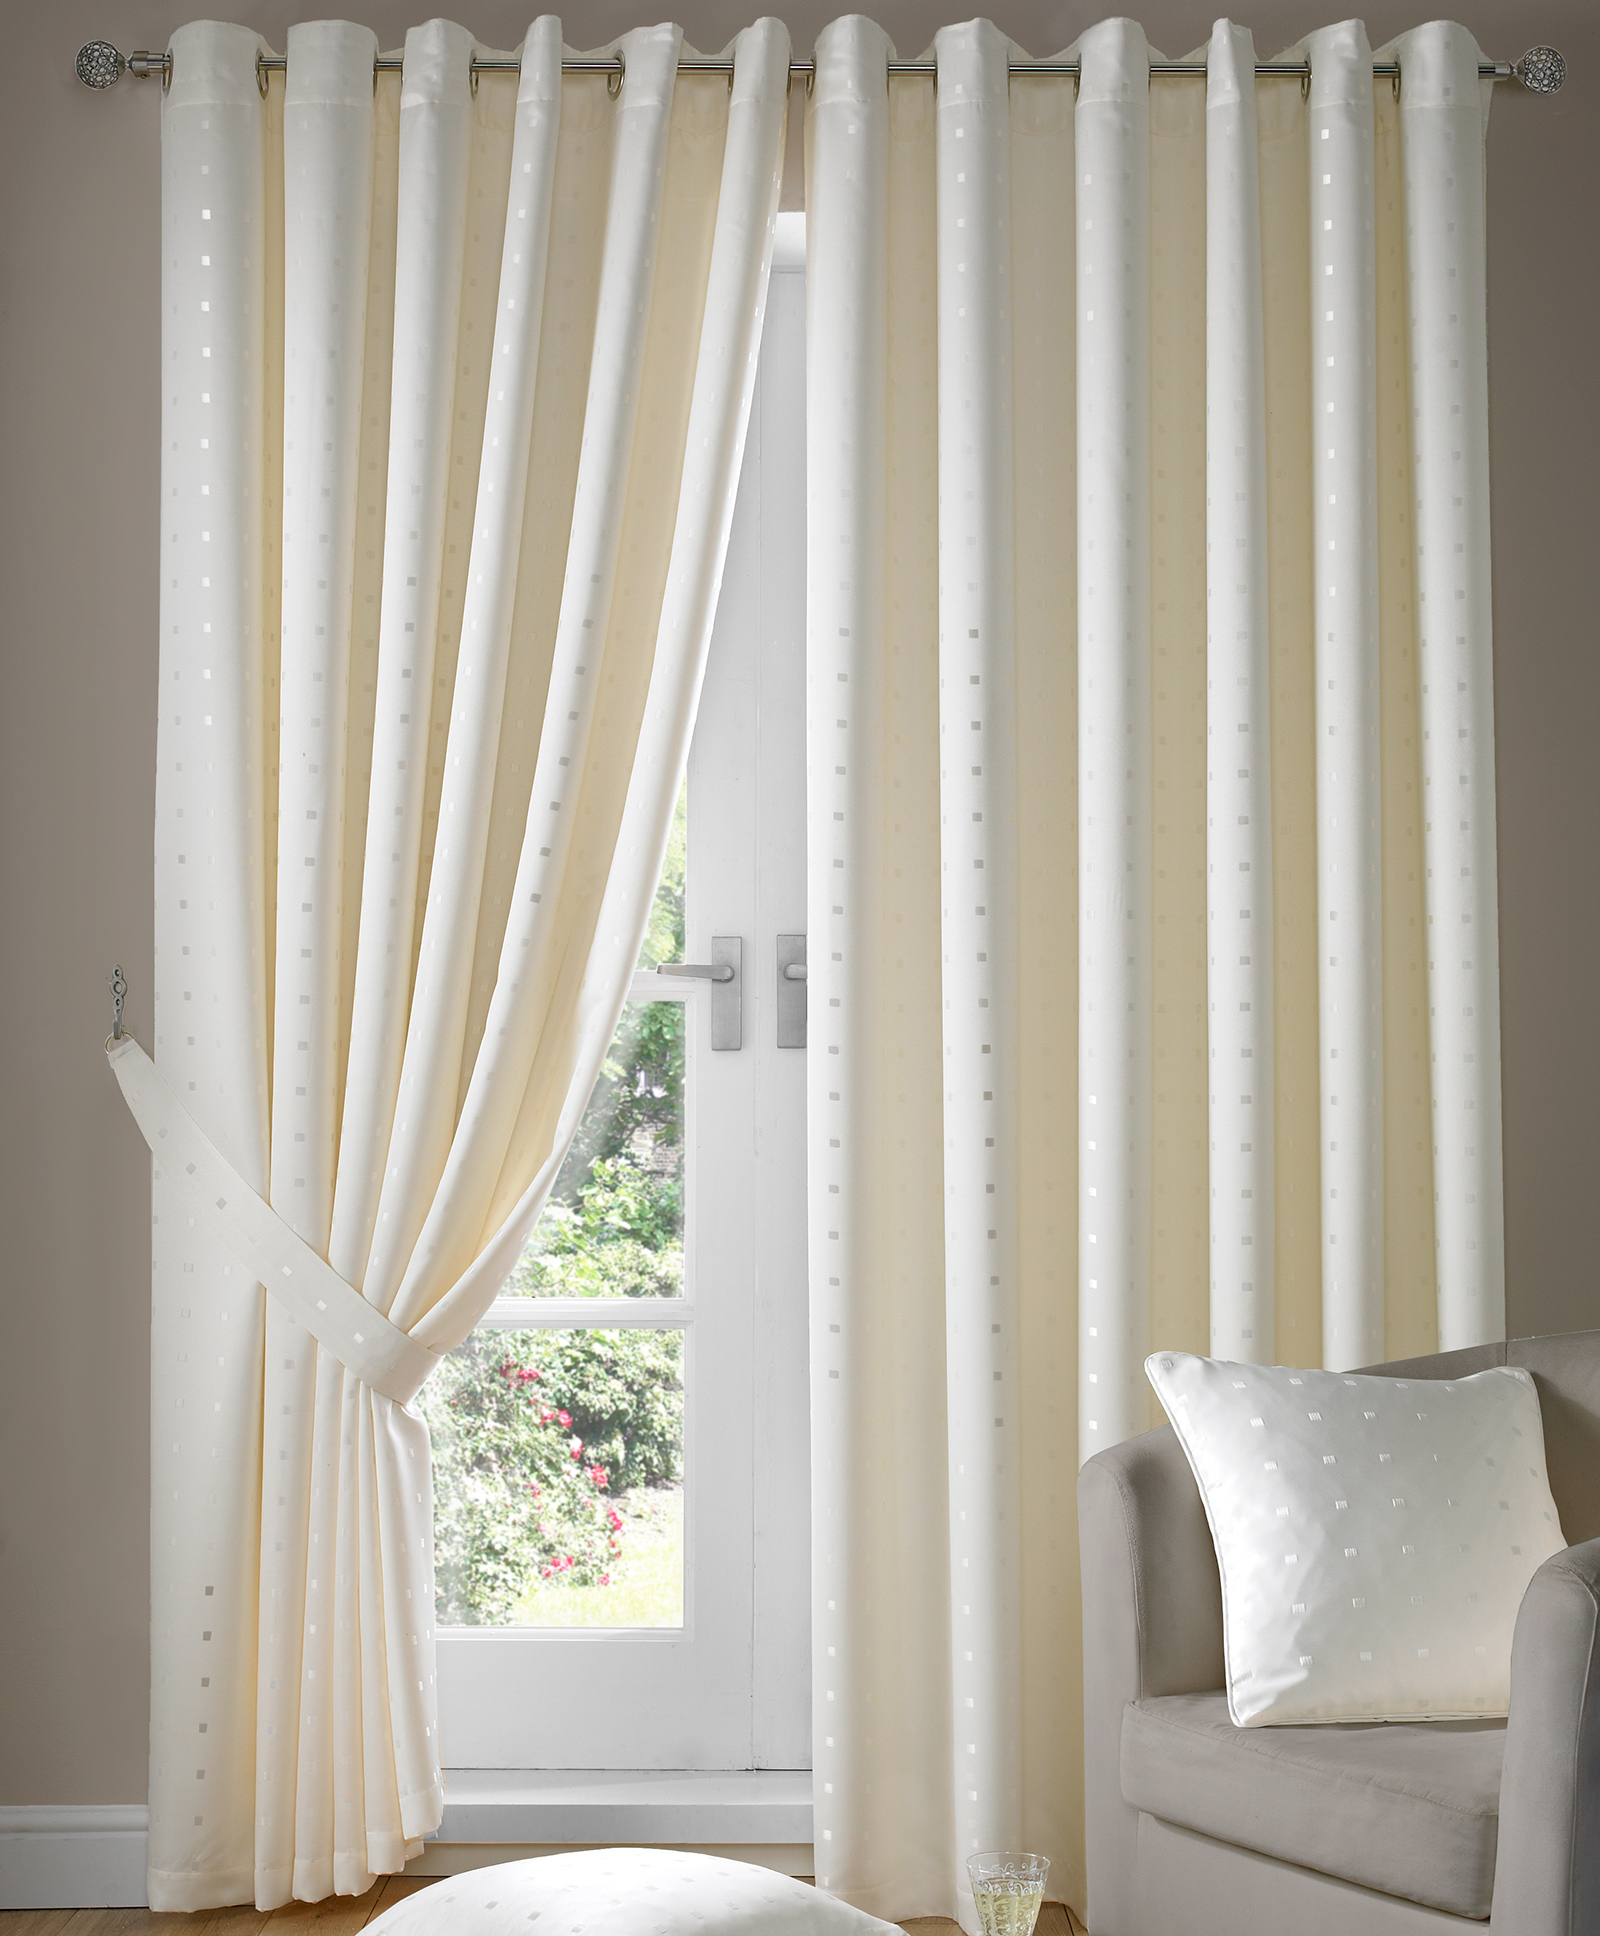 Ring Top Fully Lined Jacquard Curtains With Woven Square Pattern Ready Made Ebay